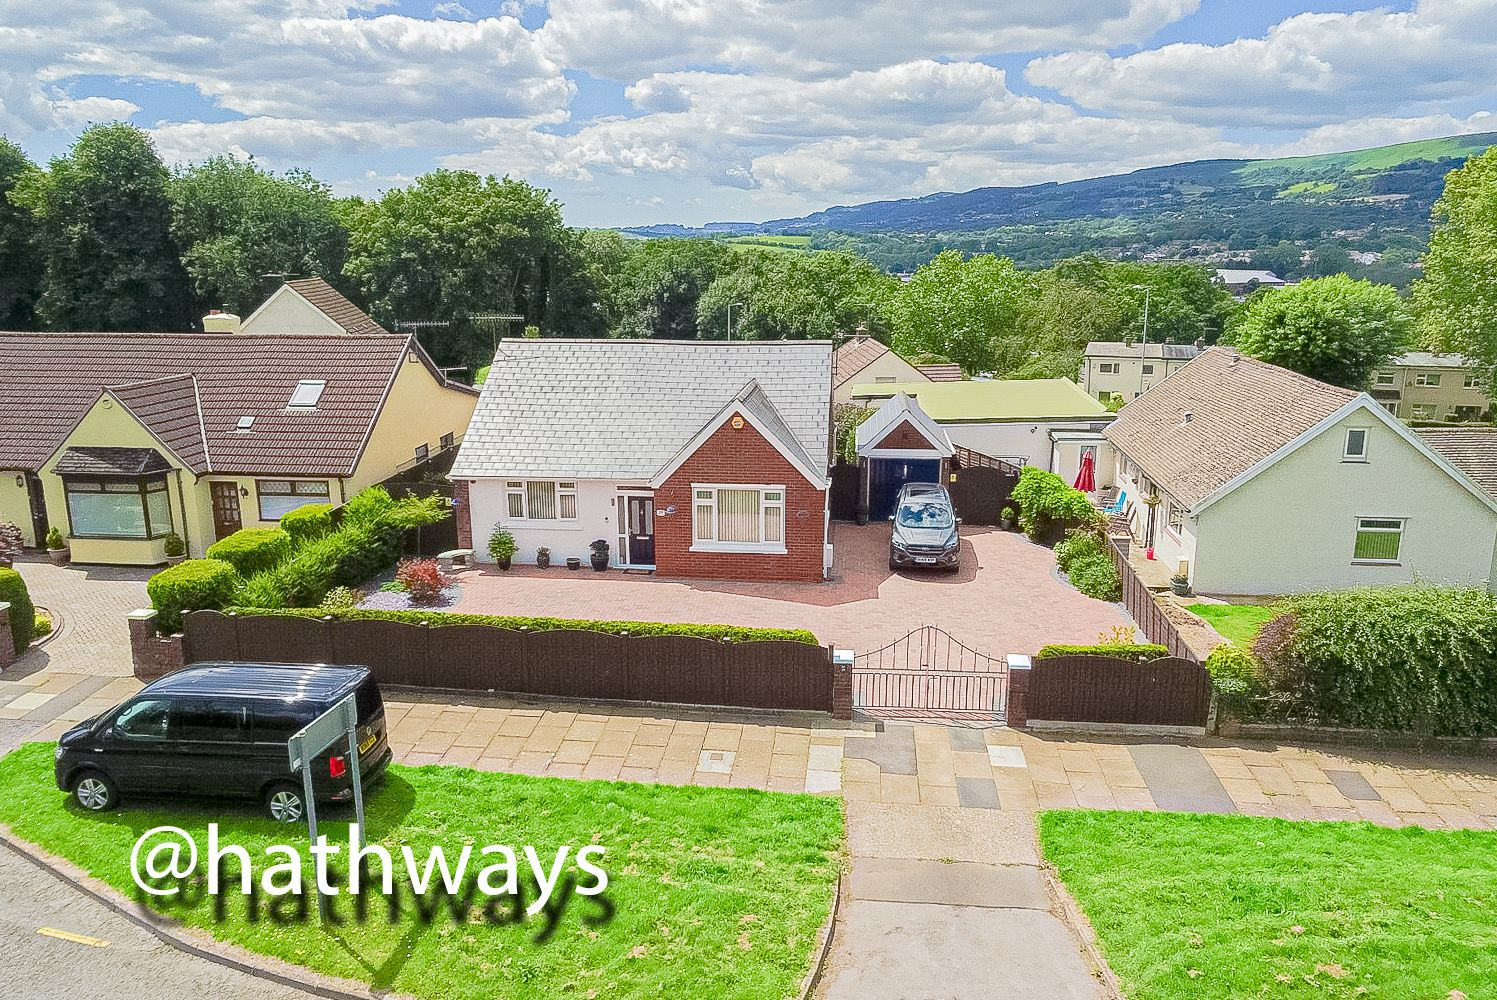 3 bed bungalow for sale in Chapel Lane, NP44